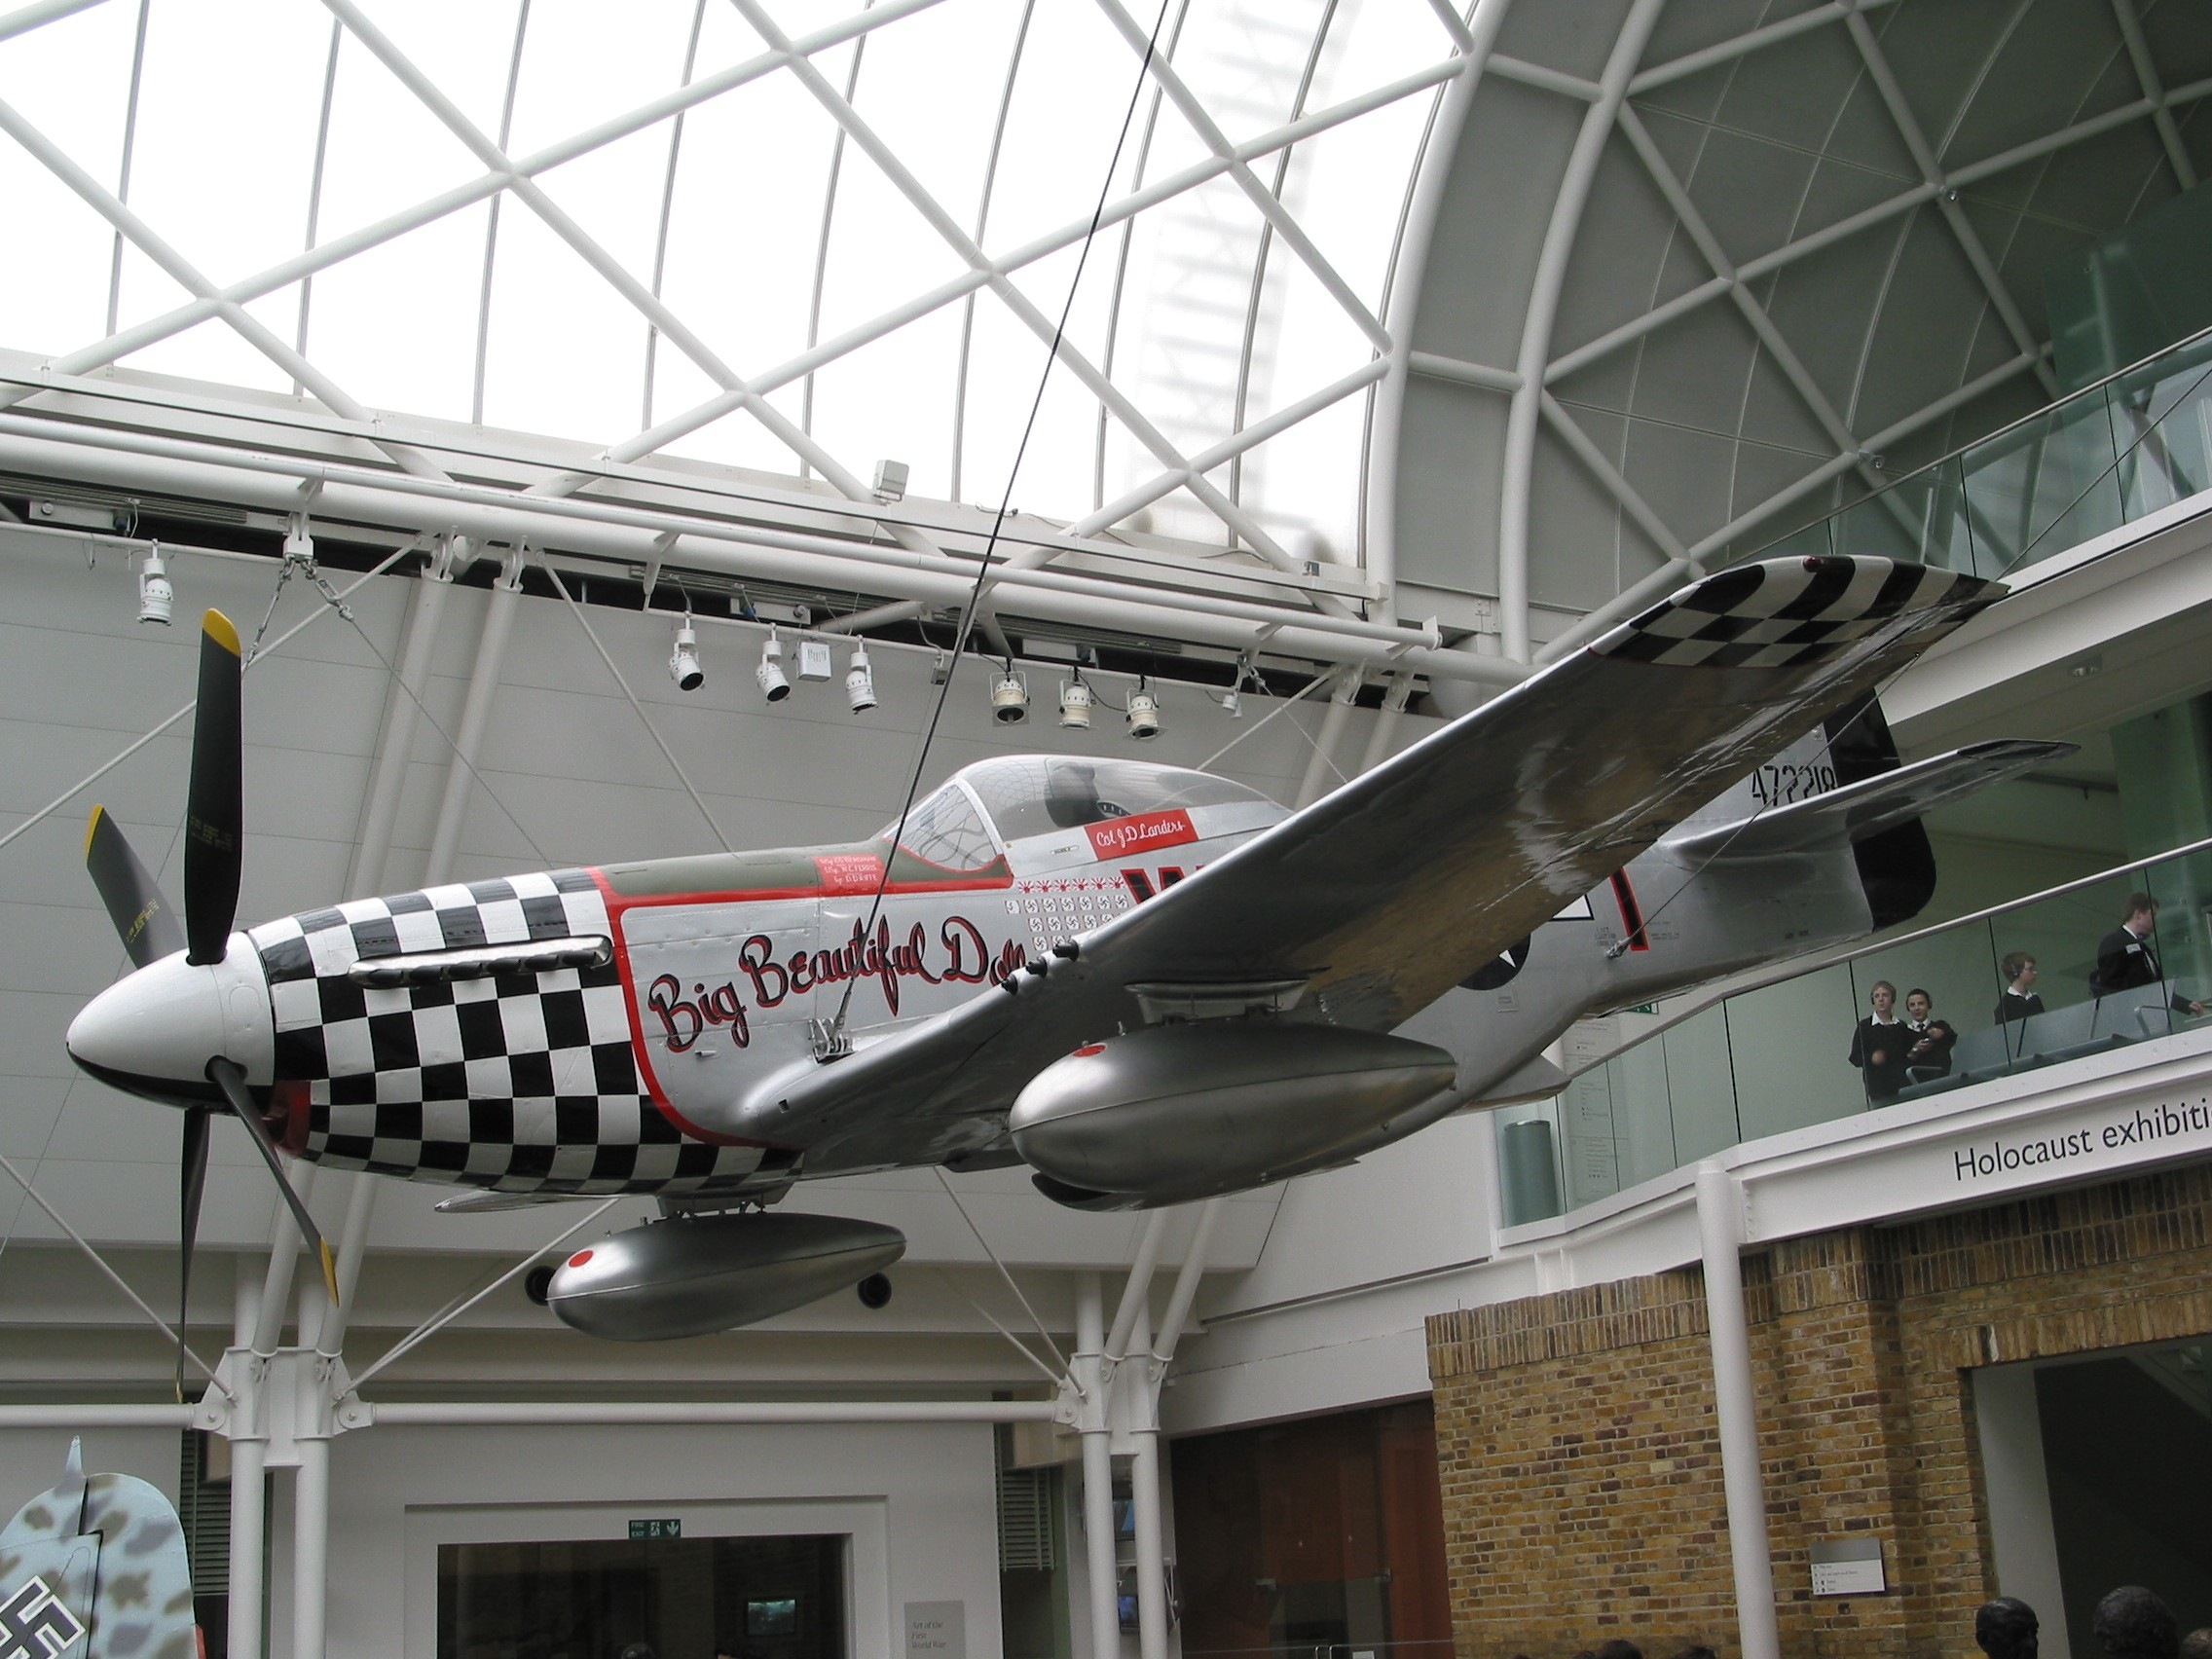 Imperial War Museum, London: All year